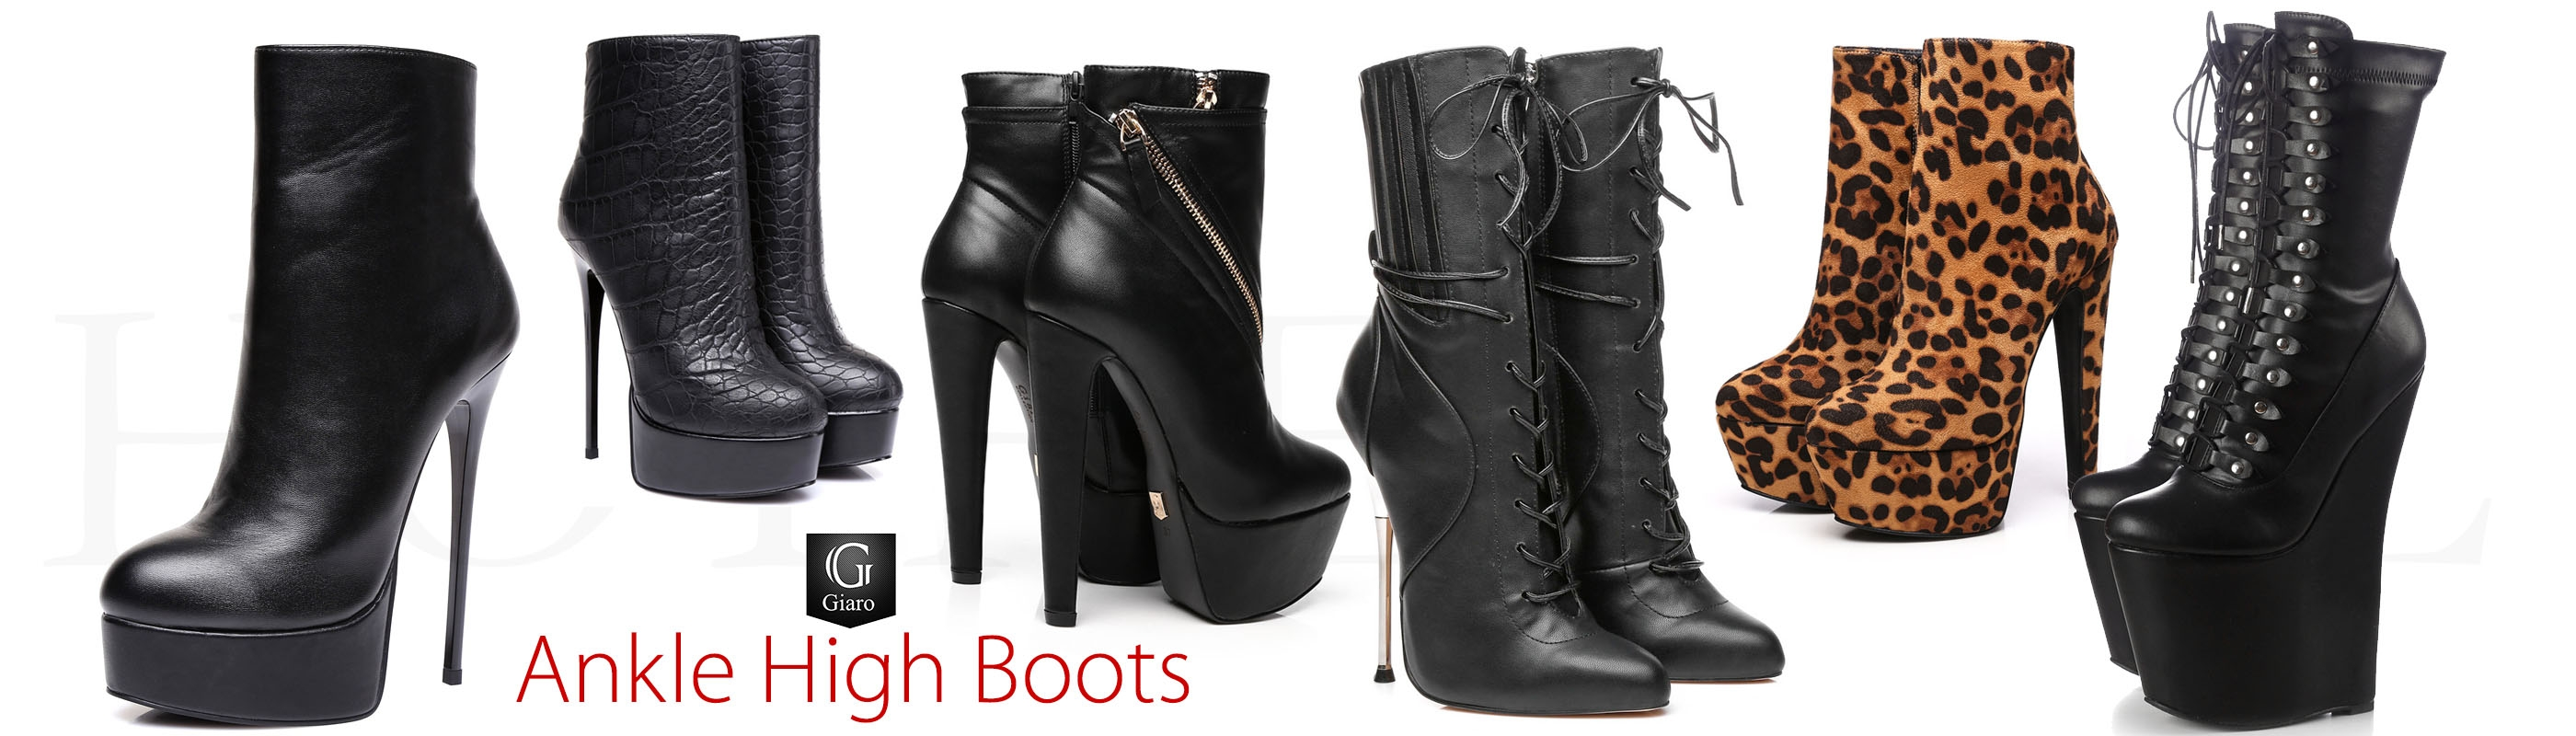 756e4dd5a62b ... Giaro ankle high platform and wedge boots